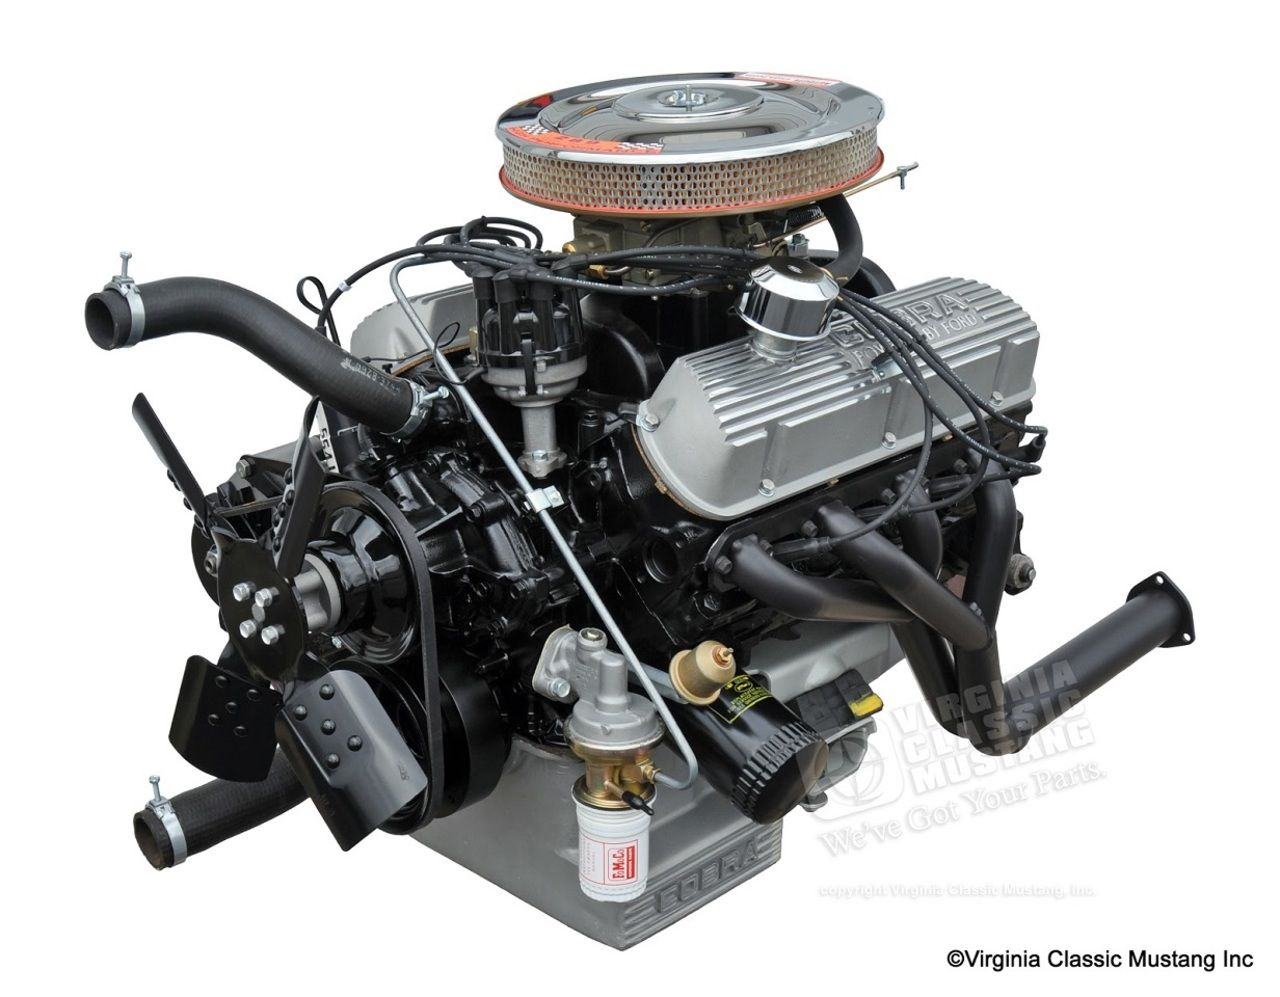 1965 1966 shelby gt350 engine [ 1280 x 997 Pixel ]